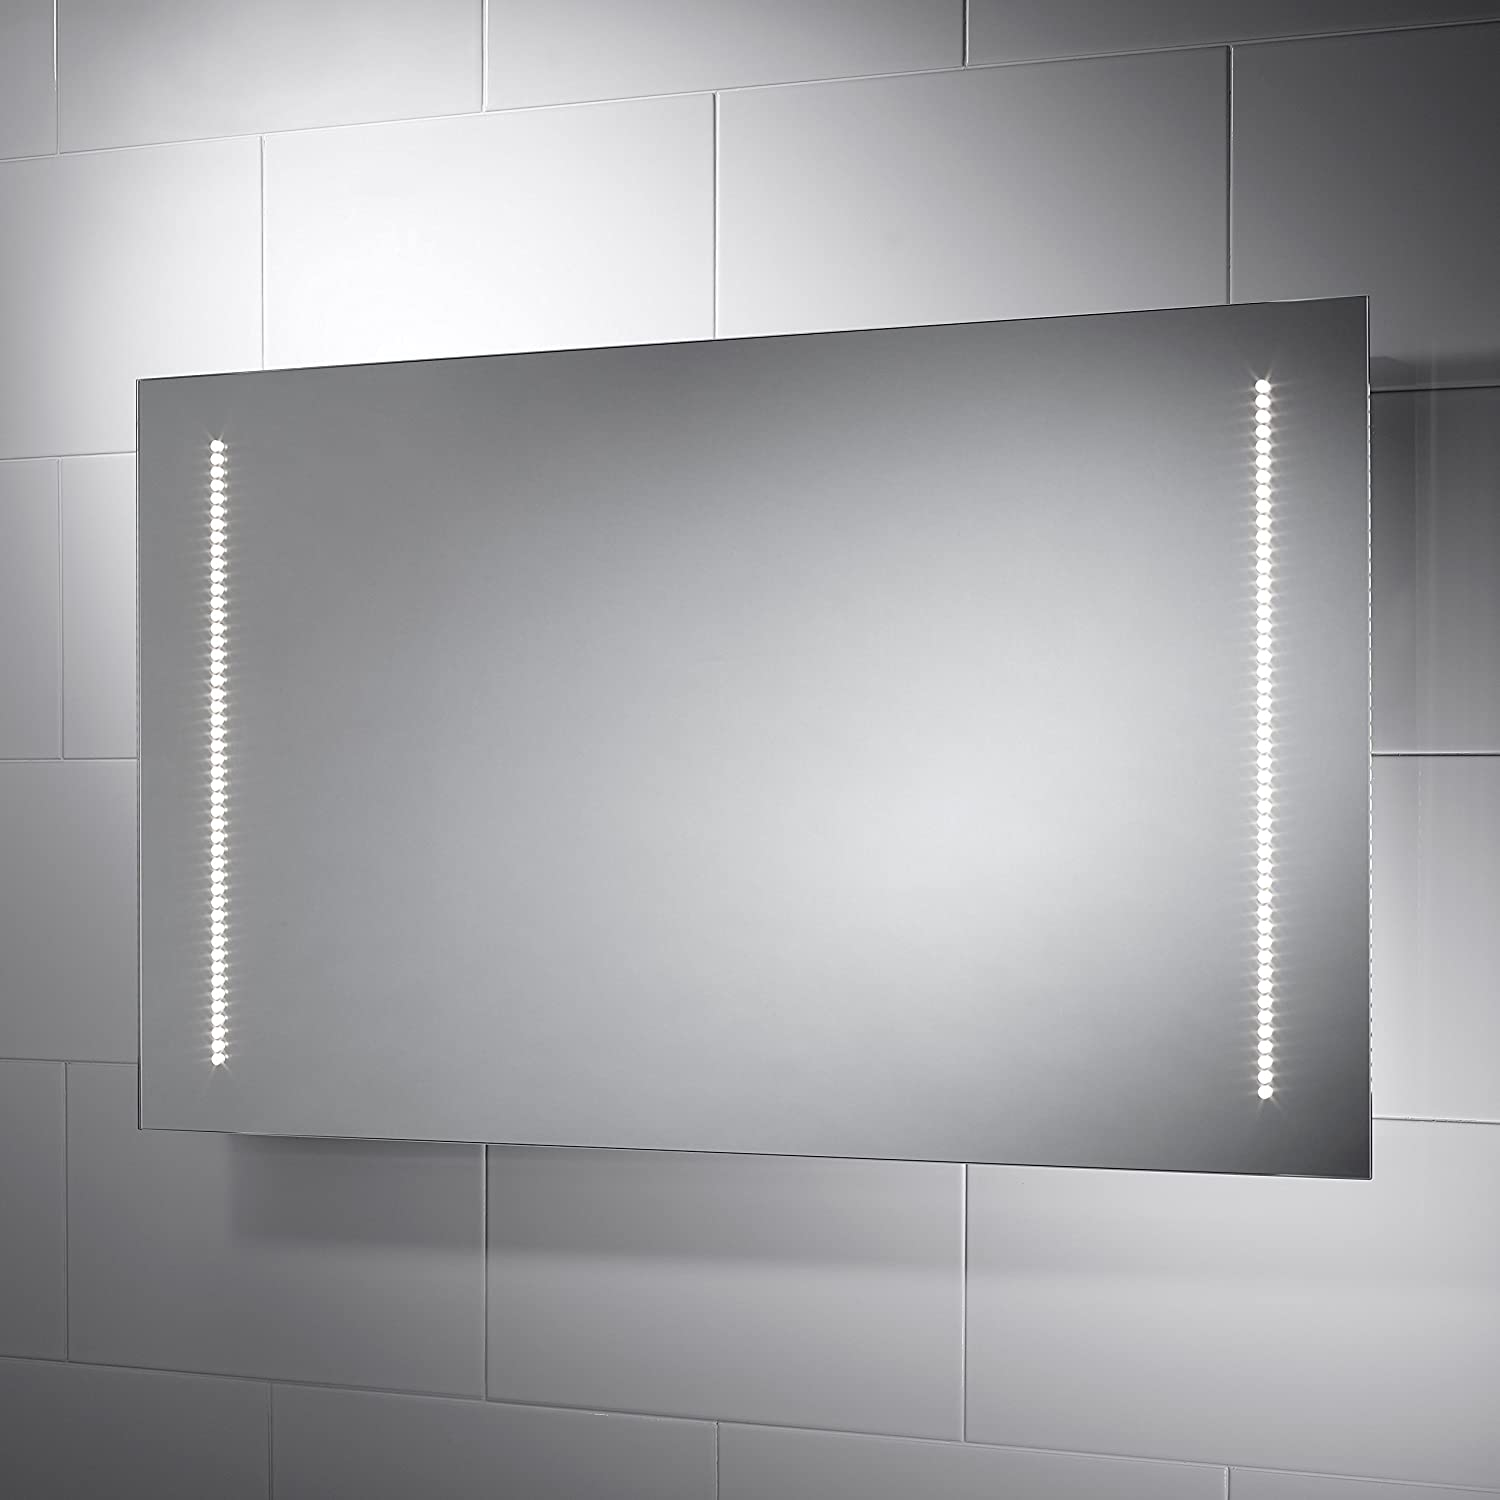 Pebble Grey Large Rectangular Assisi Led Illuminated Bathroom Mirror With  Lights Size: 1000mm(w) X 600mm(h) With Infrared Sensor Switch, Dual  Voltage